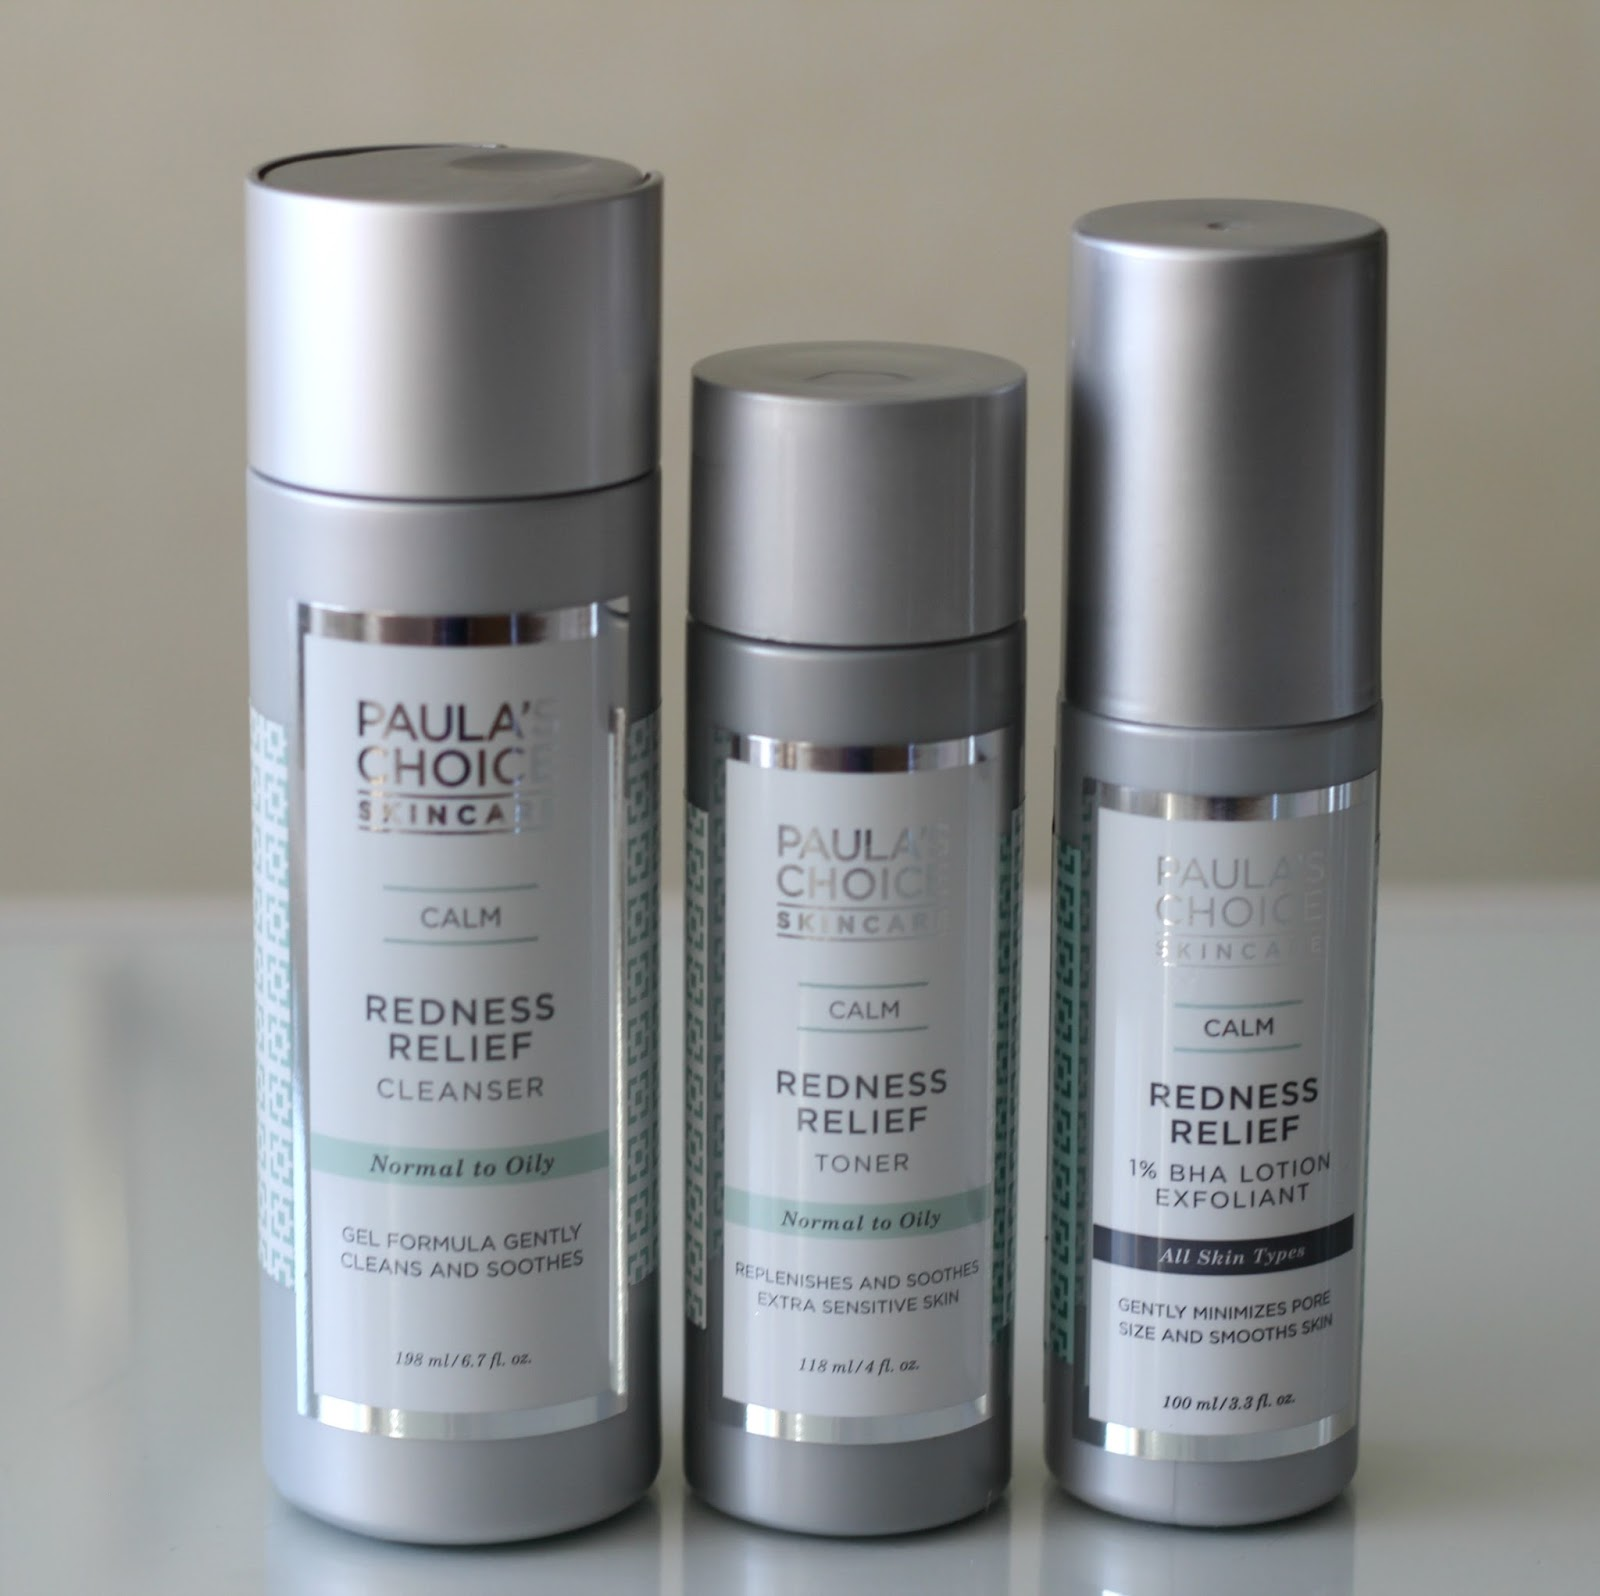 Paula's Choice Calm Redness Relief Cleanser Toner 1% BHA Lotion Exfoliant